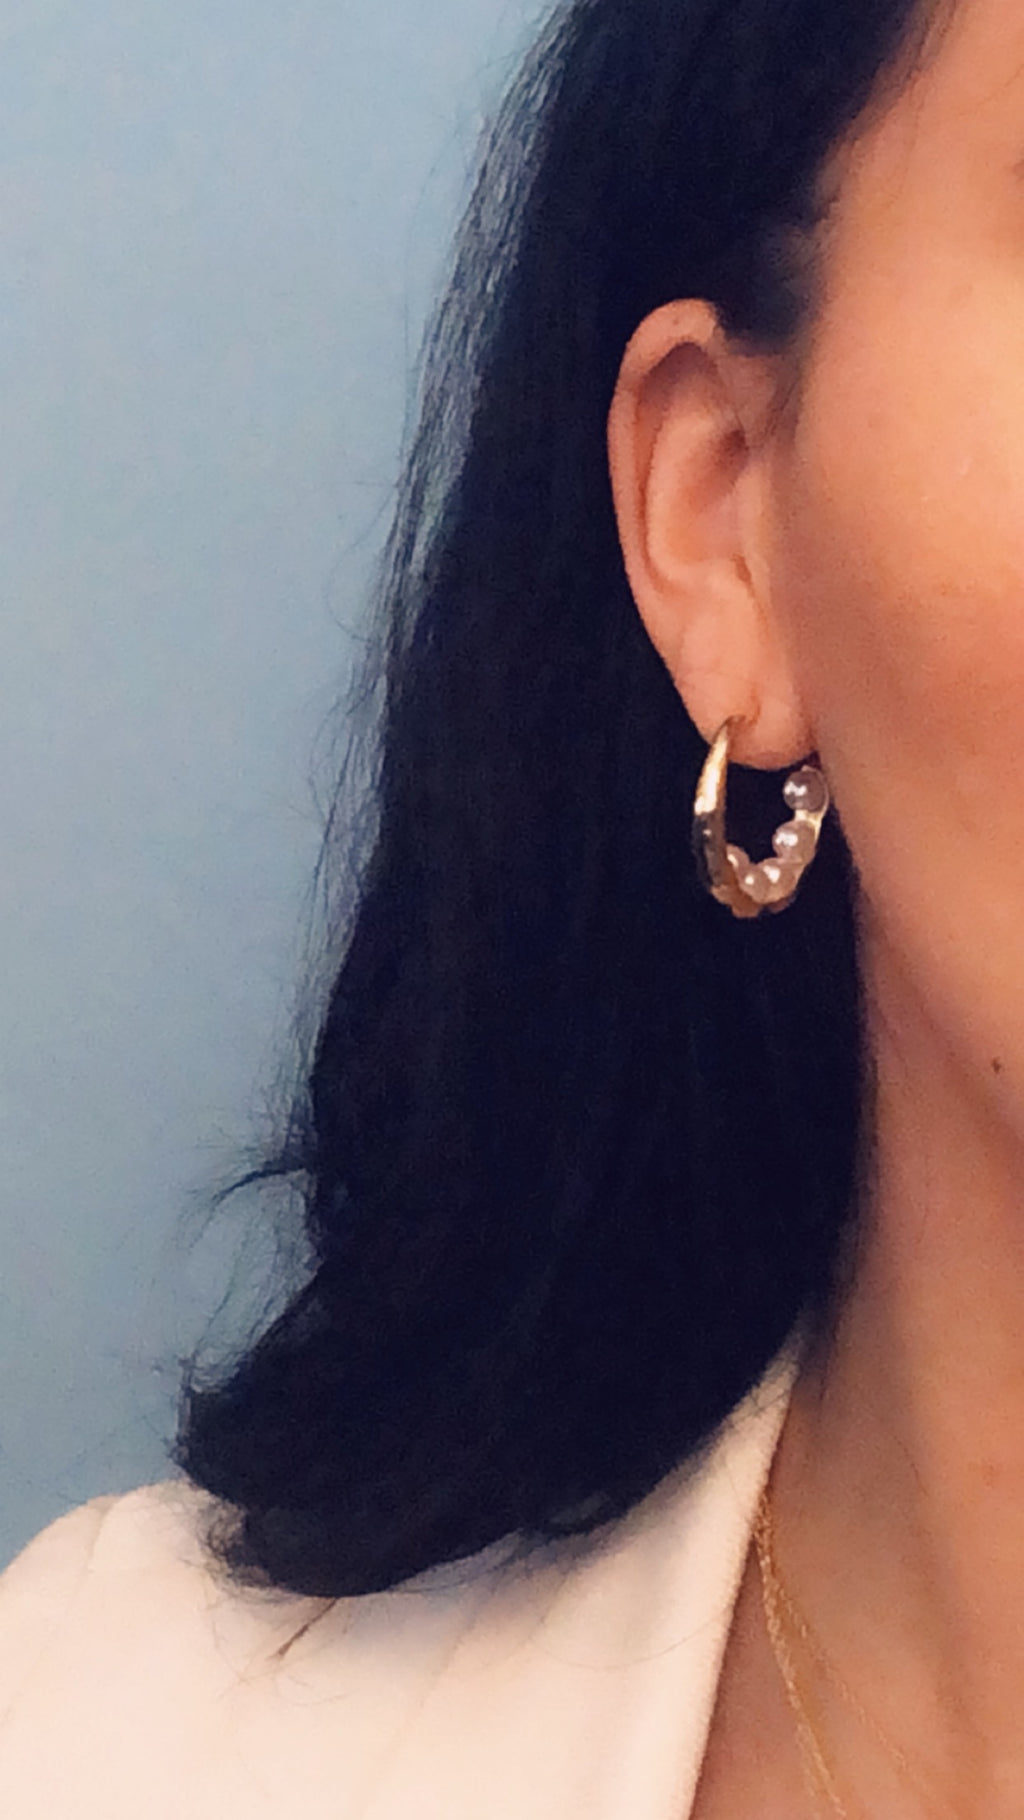 Fulfillment Earrings